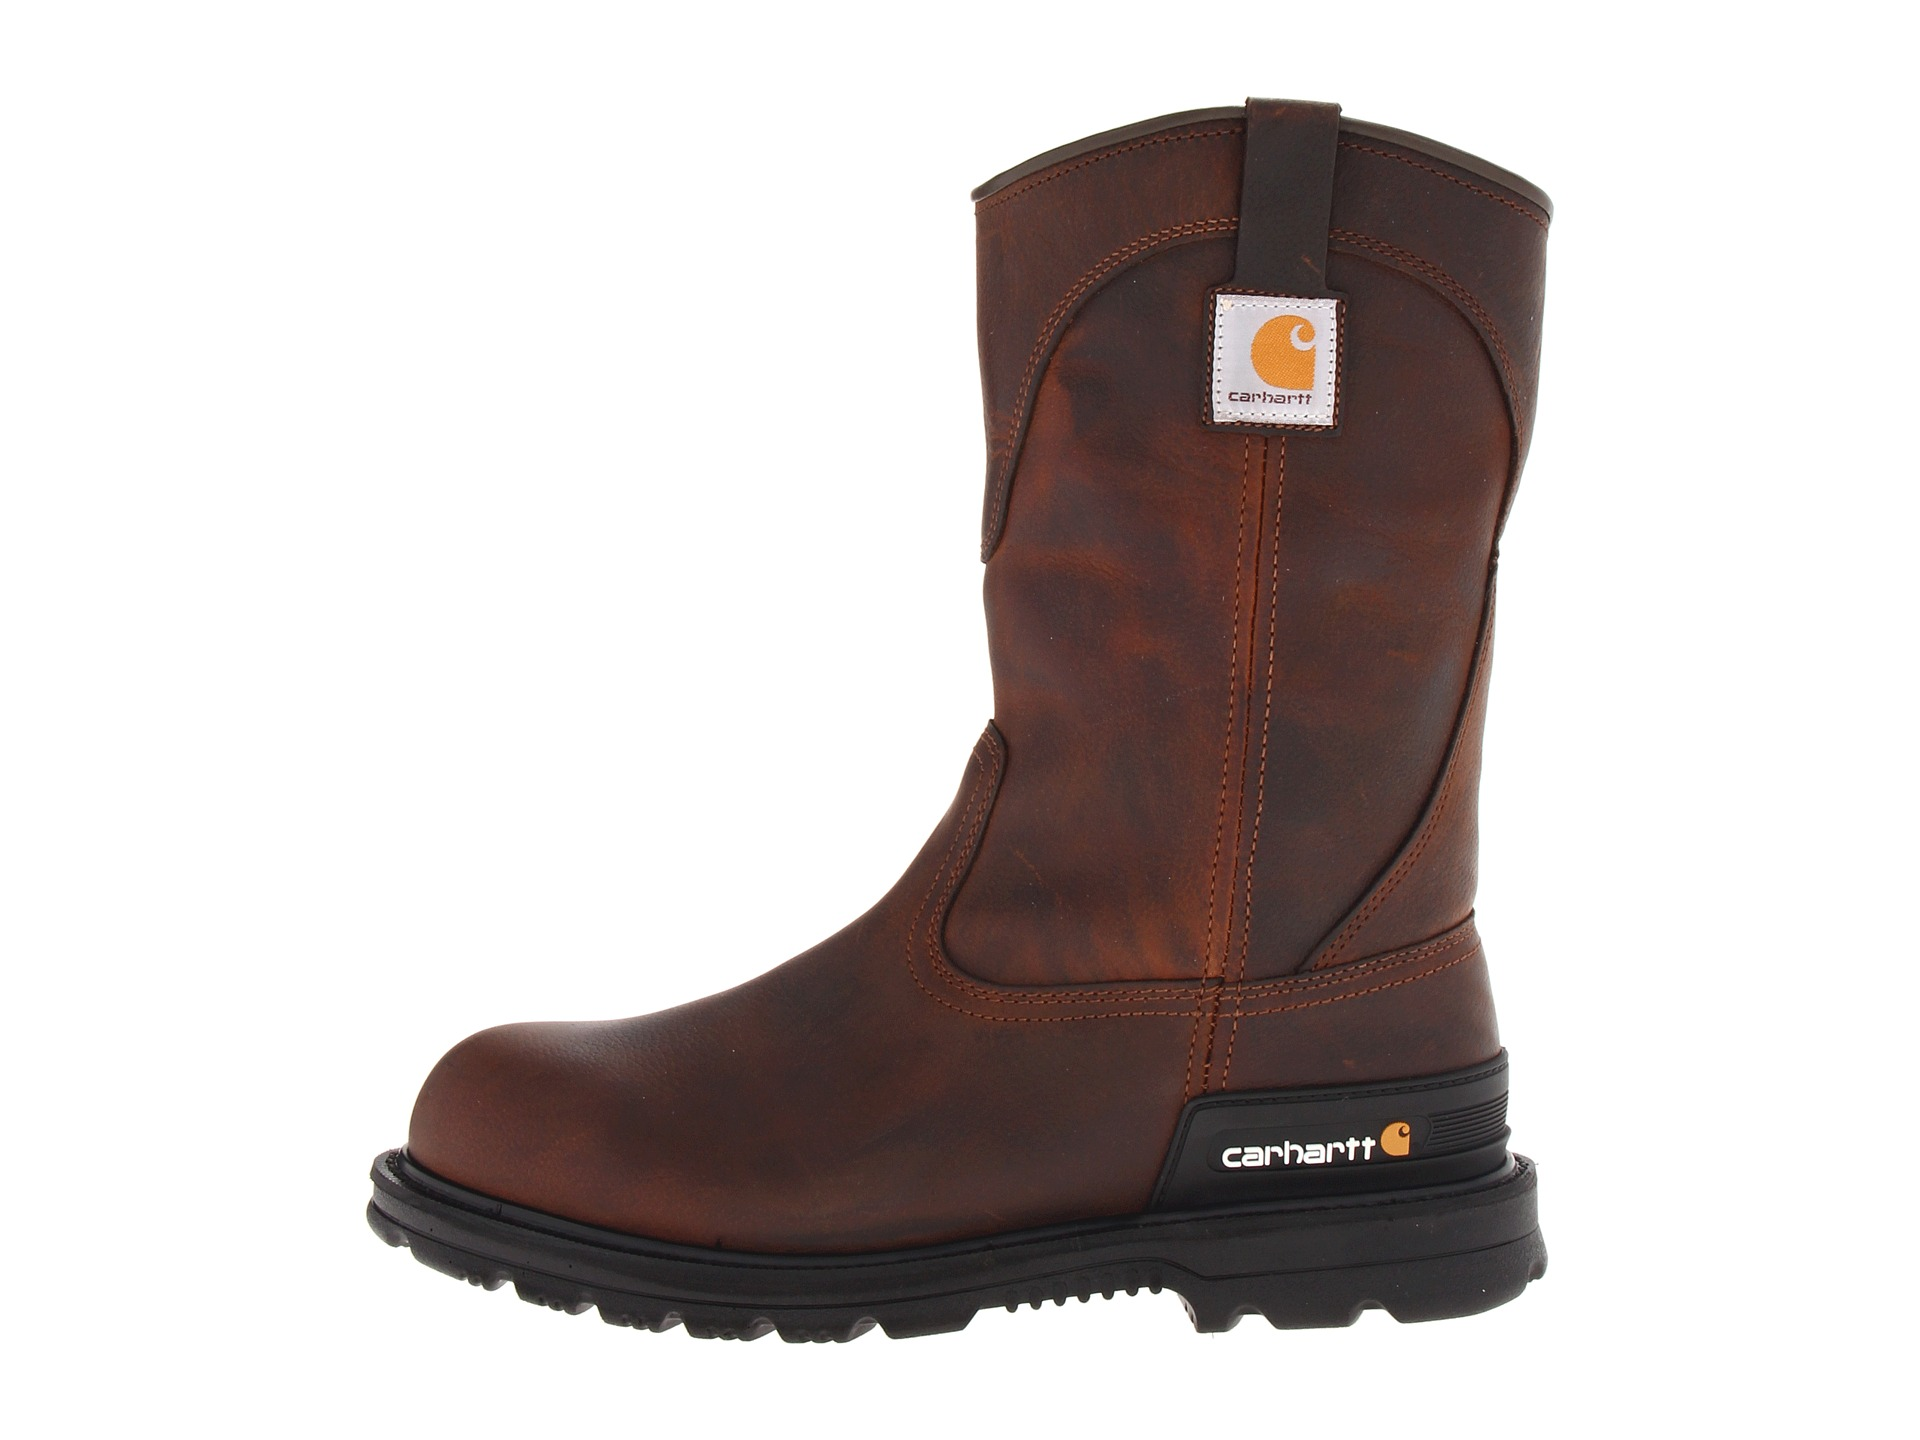 carhartt wellington unlined safety toe boot zappos